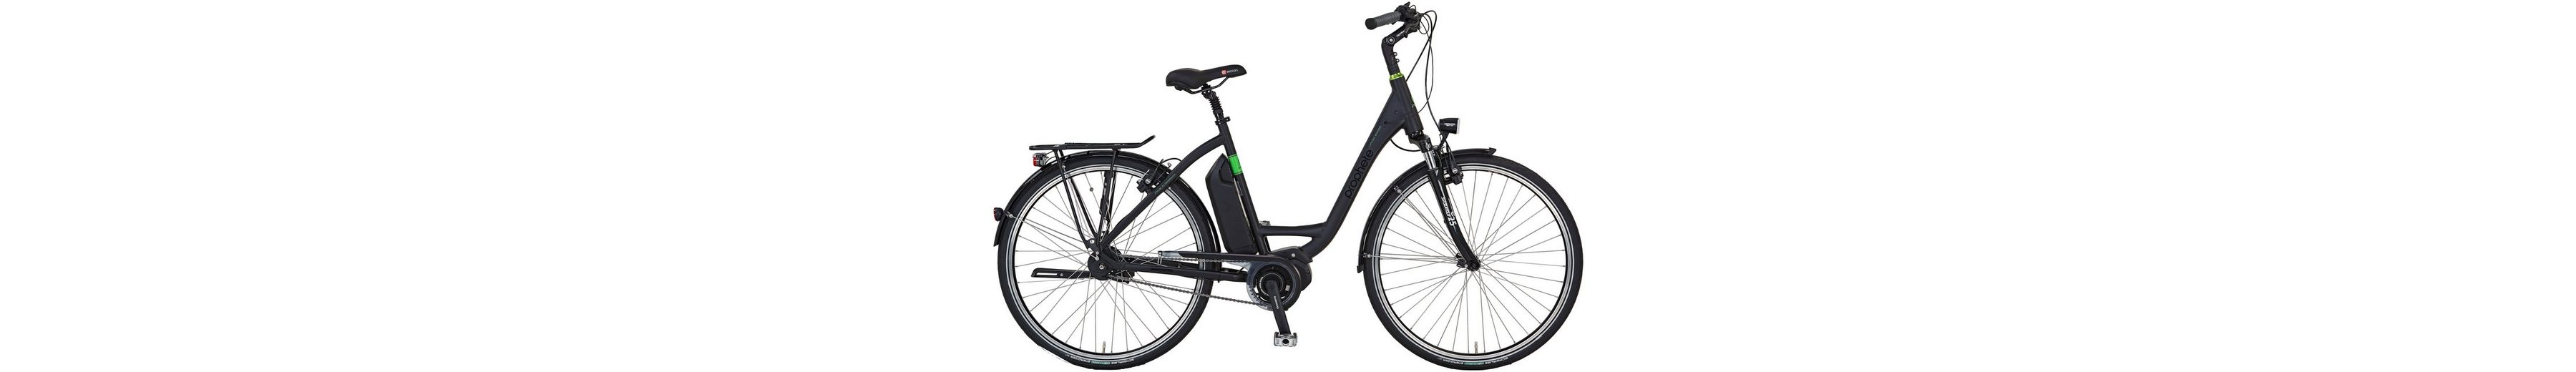 E-Bike City Damen »Limited Edition«, 28 Zoll, 8-Gang, Mittelmotor, 417 Wh, RH50